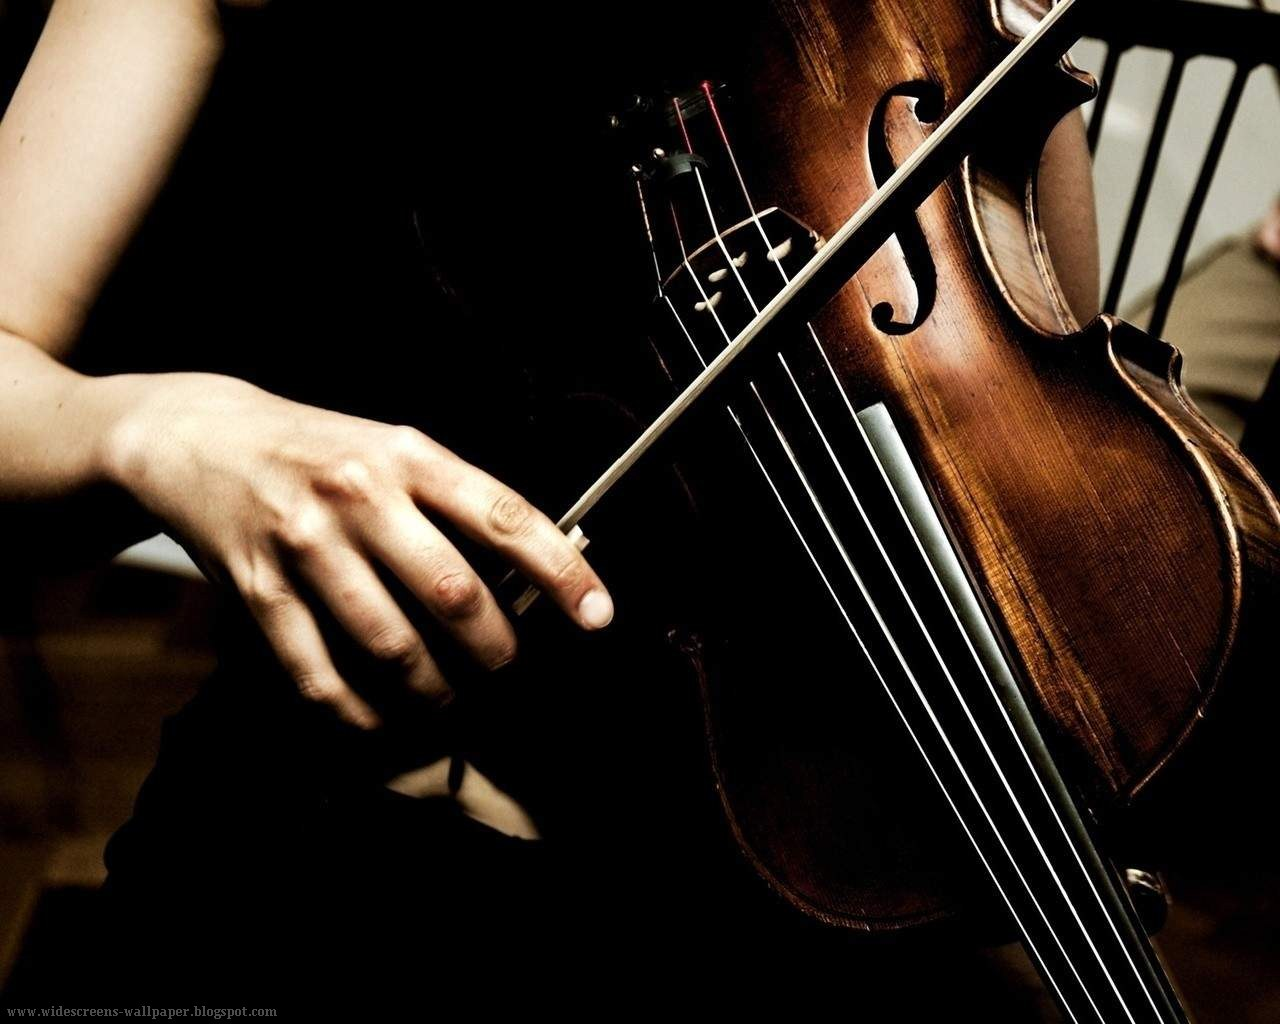 Girls playing violin wallpaper - Music Violins Wallpapers